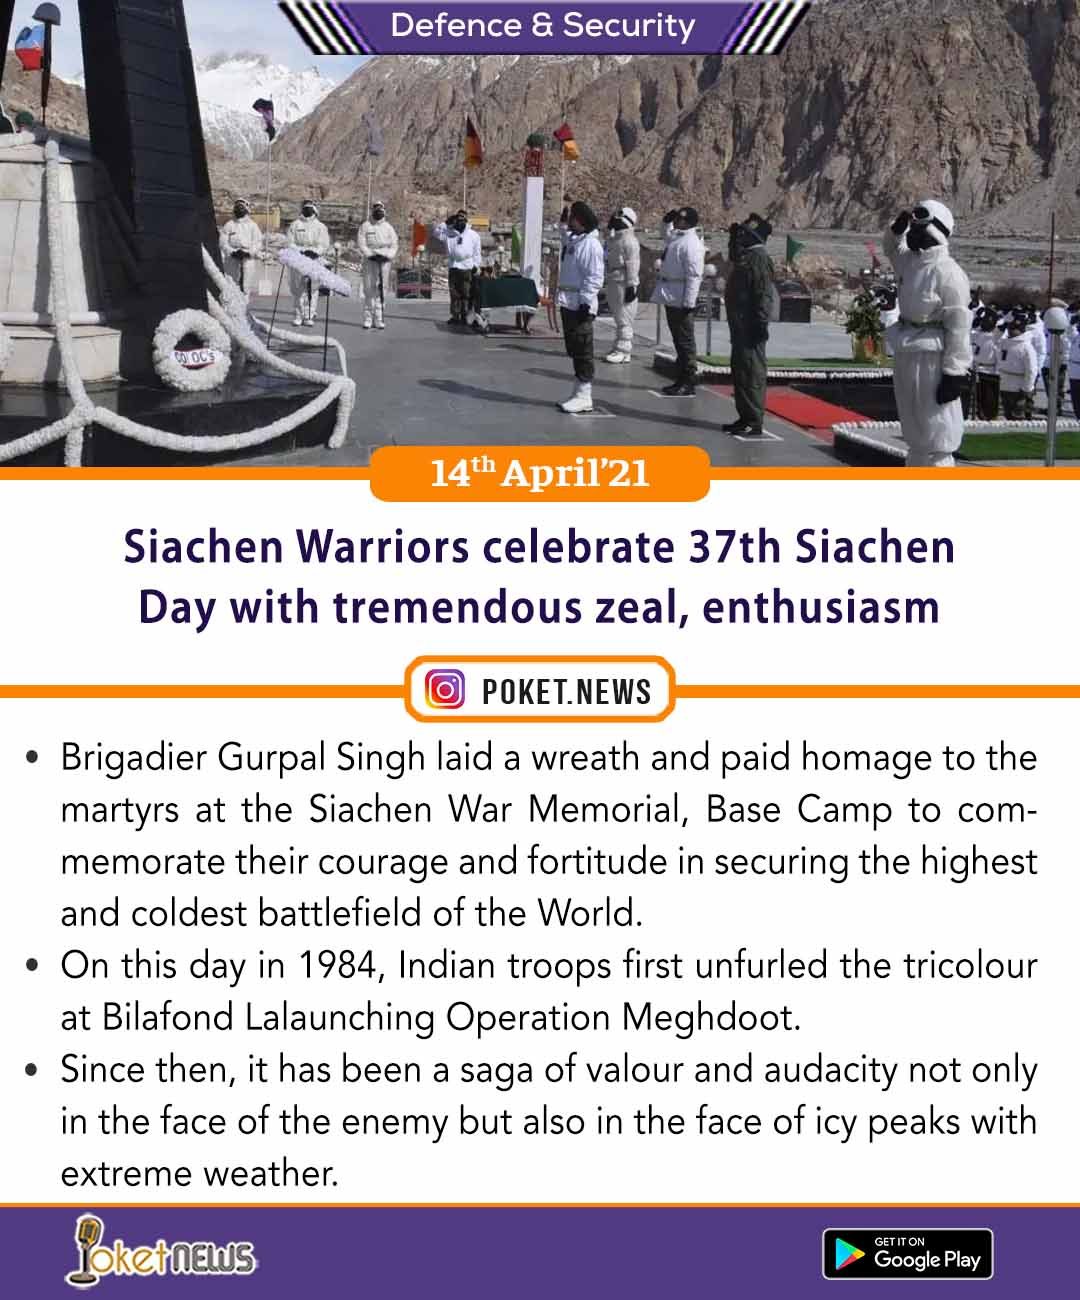 Siachen Warriors celebrate 37th Siachen Day with tremendous zeal, enthusiasm